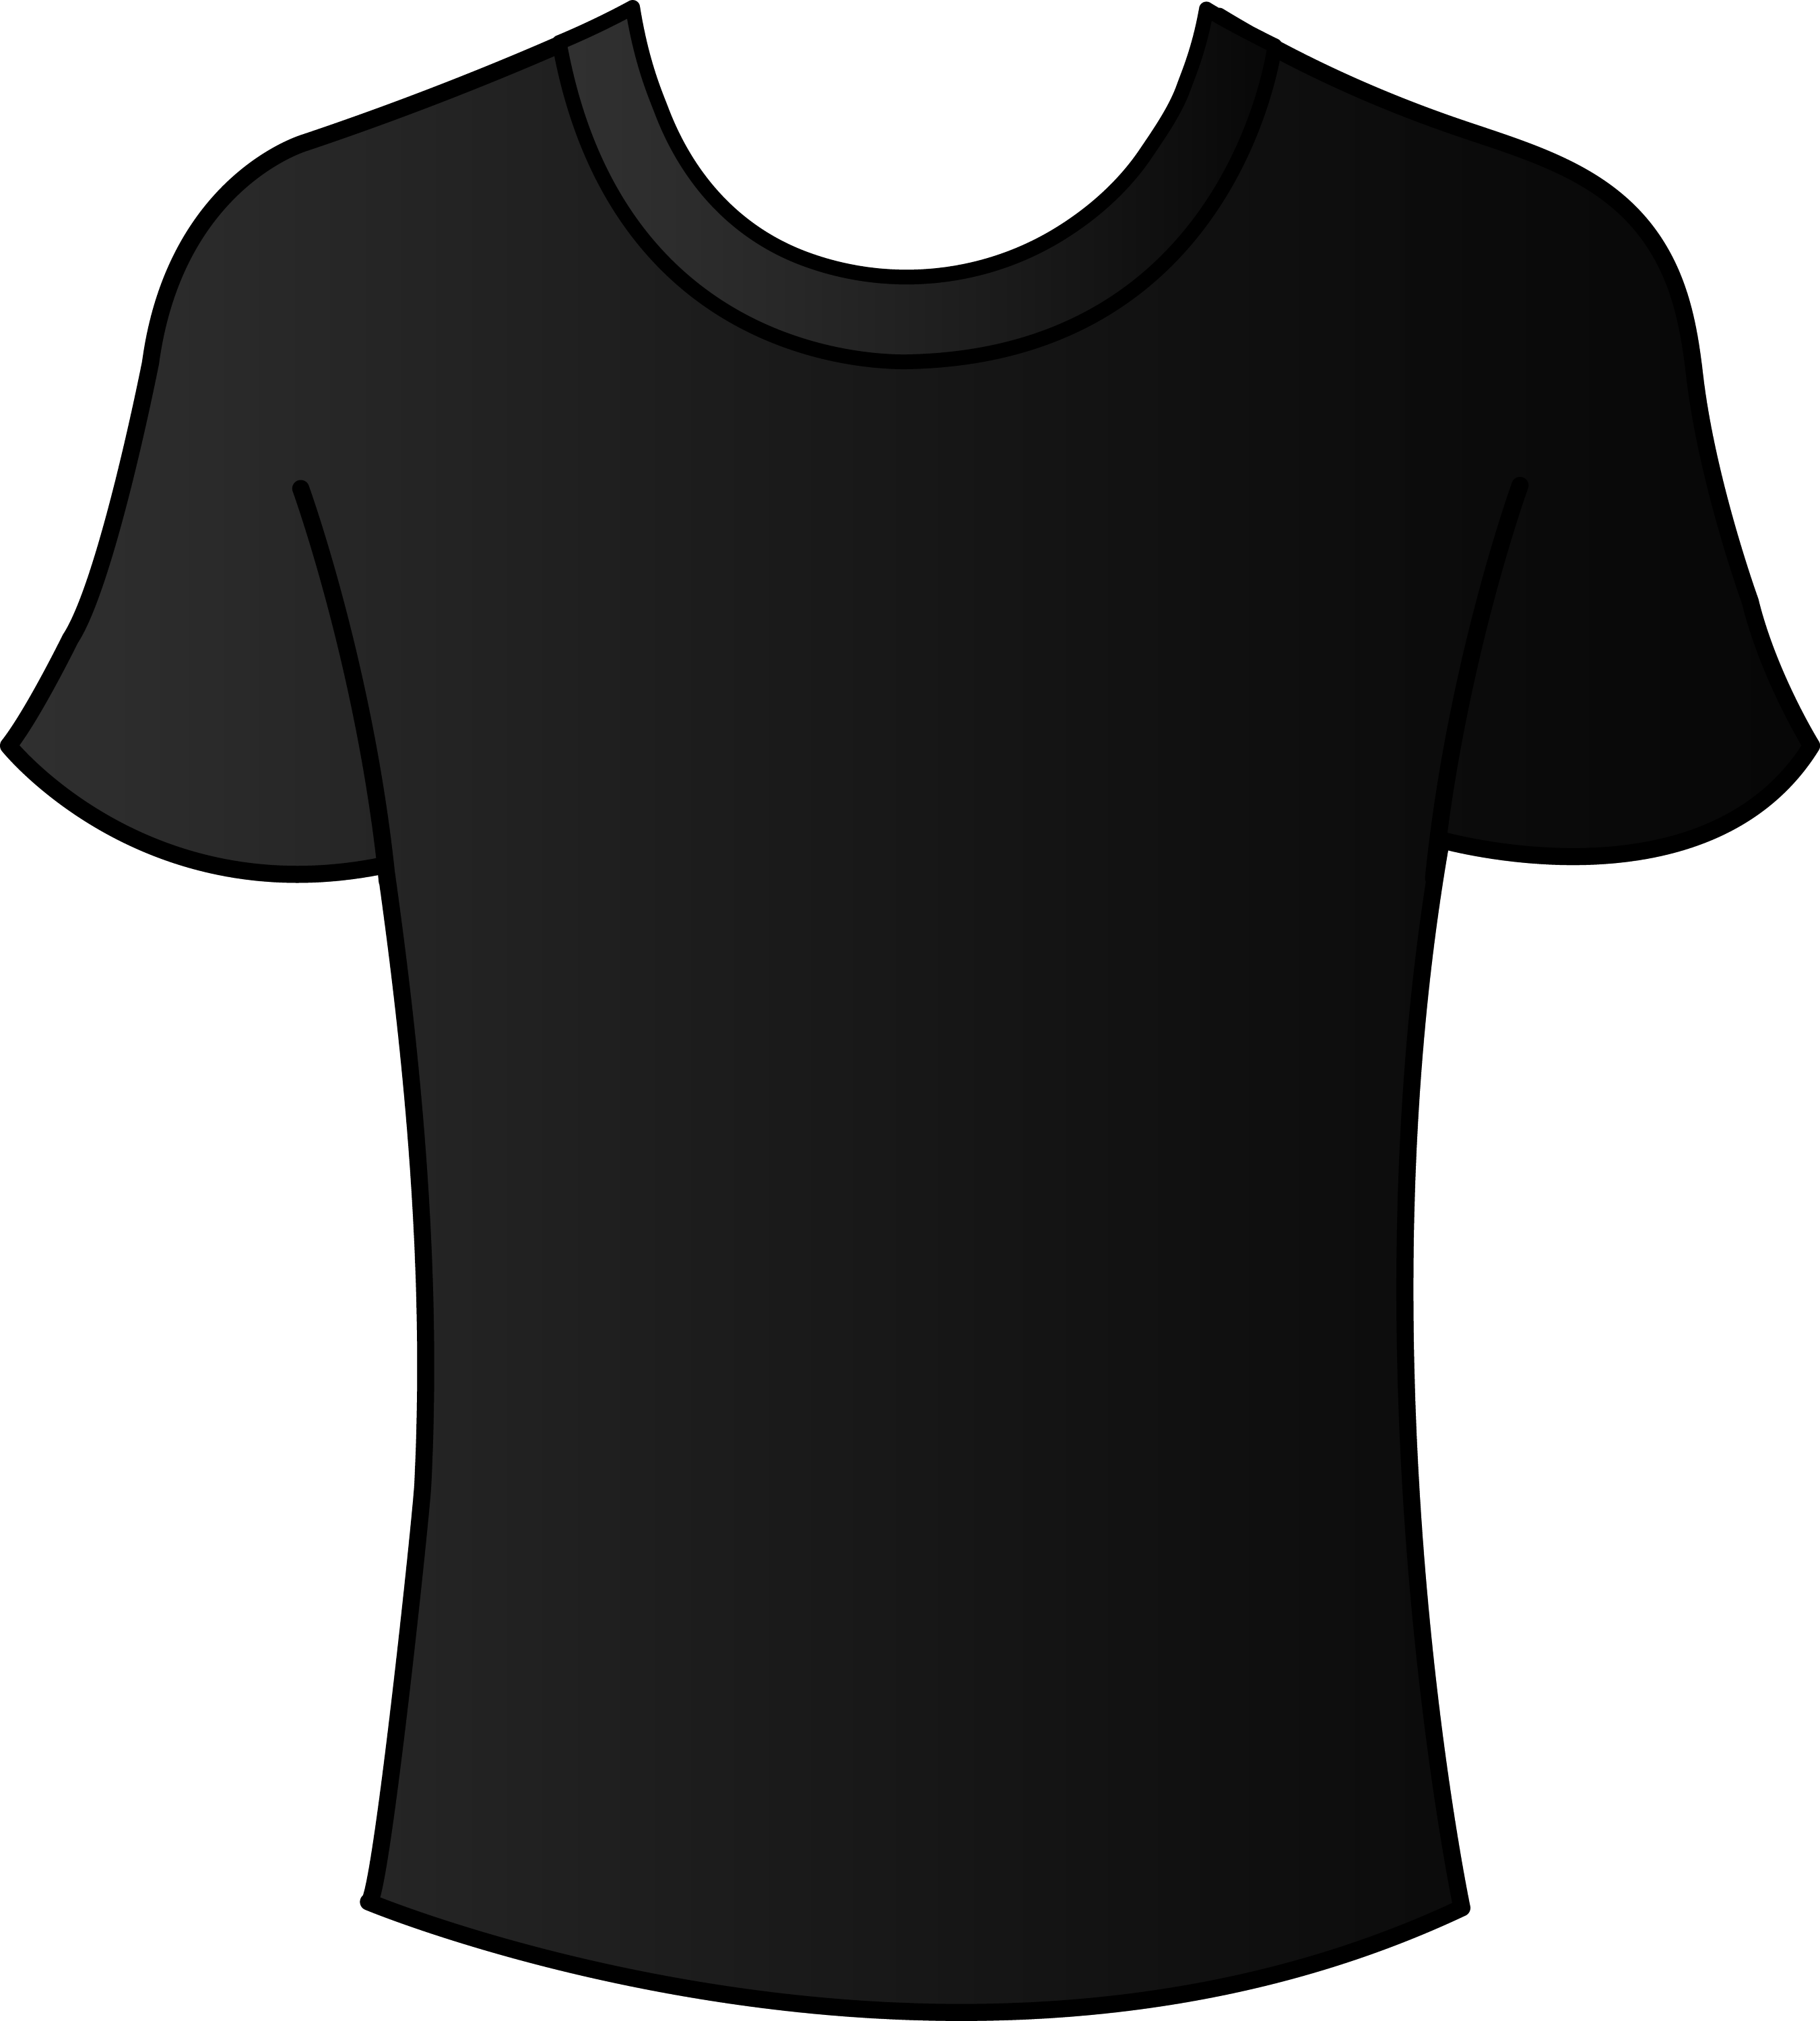 Black t shirt model template - Mens Black Tee Template